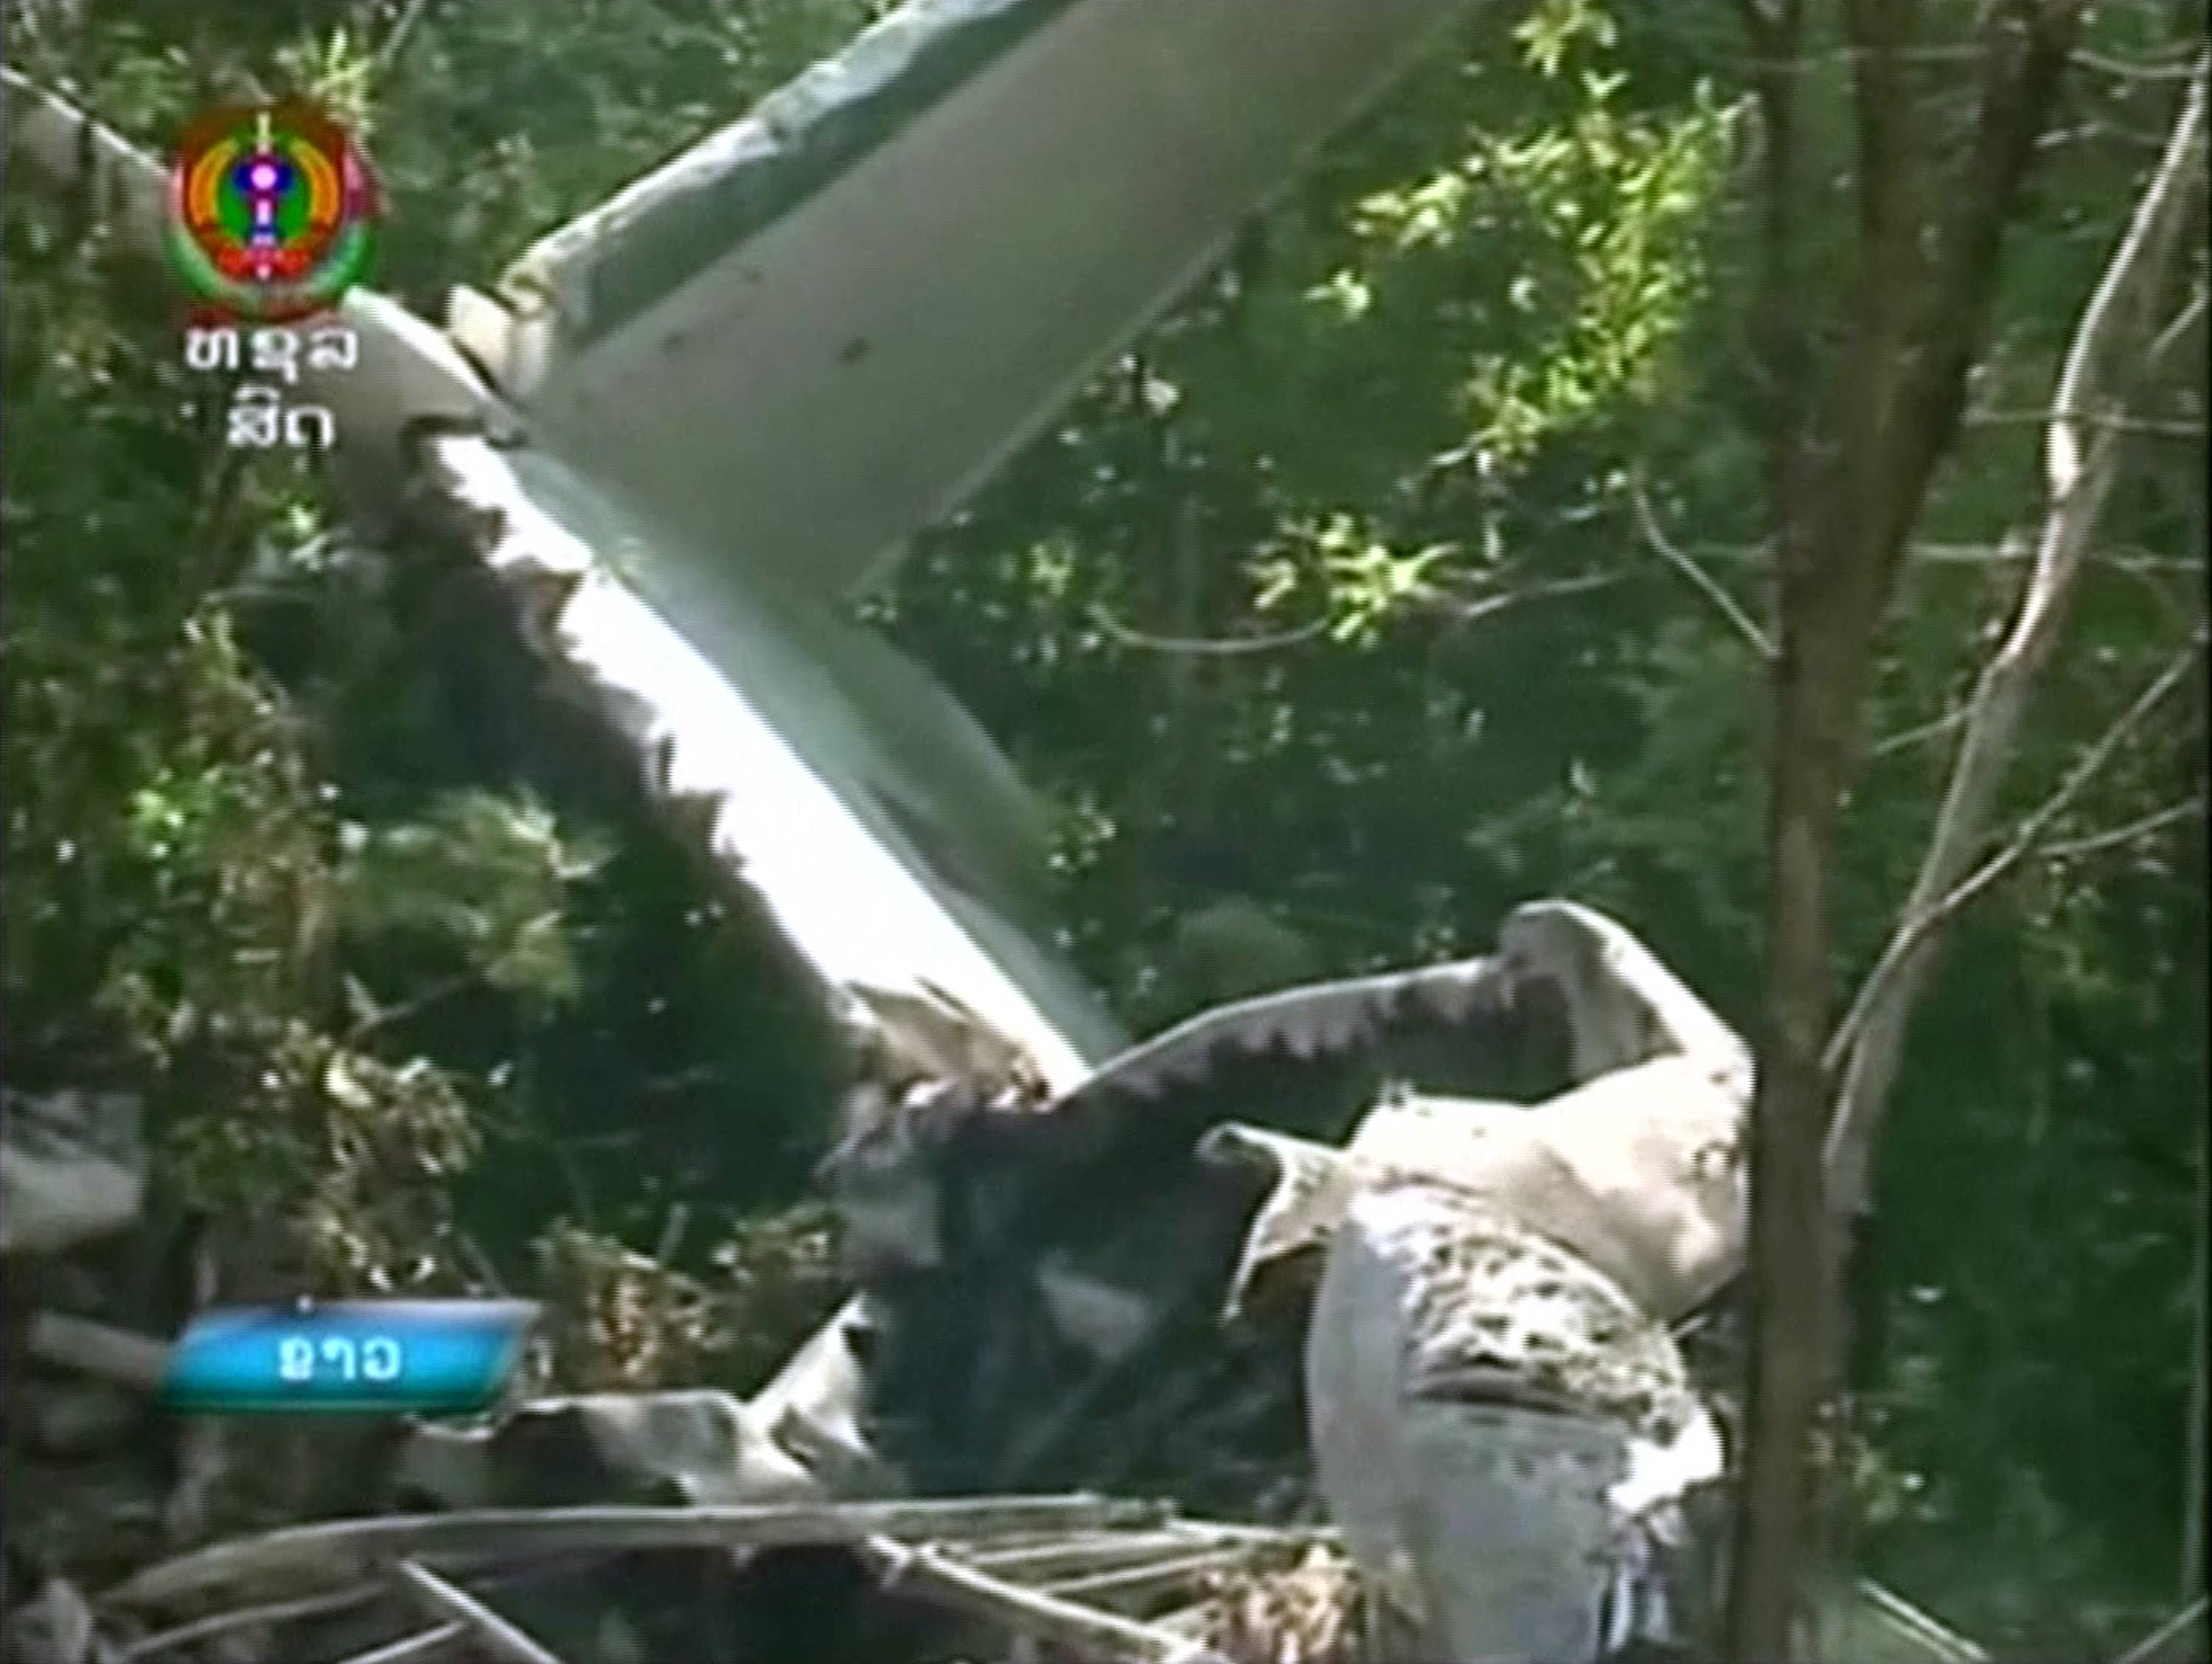 Associated Press This image taken from video provided by Lao National TV, shows the wreckage of a Lao air force plane which crashed in a forested area of Xiangkhoung province, Laos Saturday, May 17, 2014.